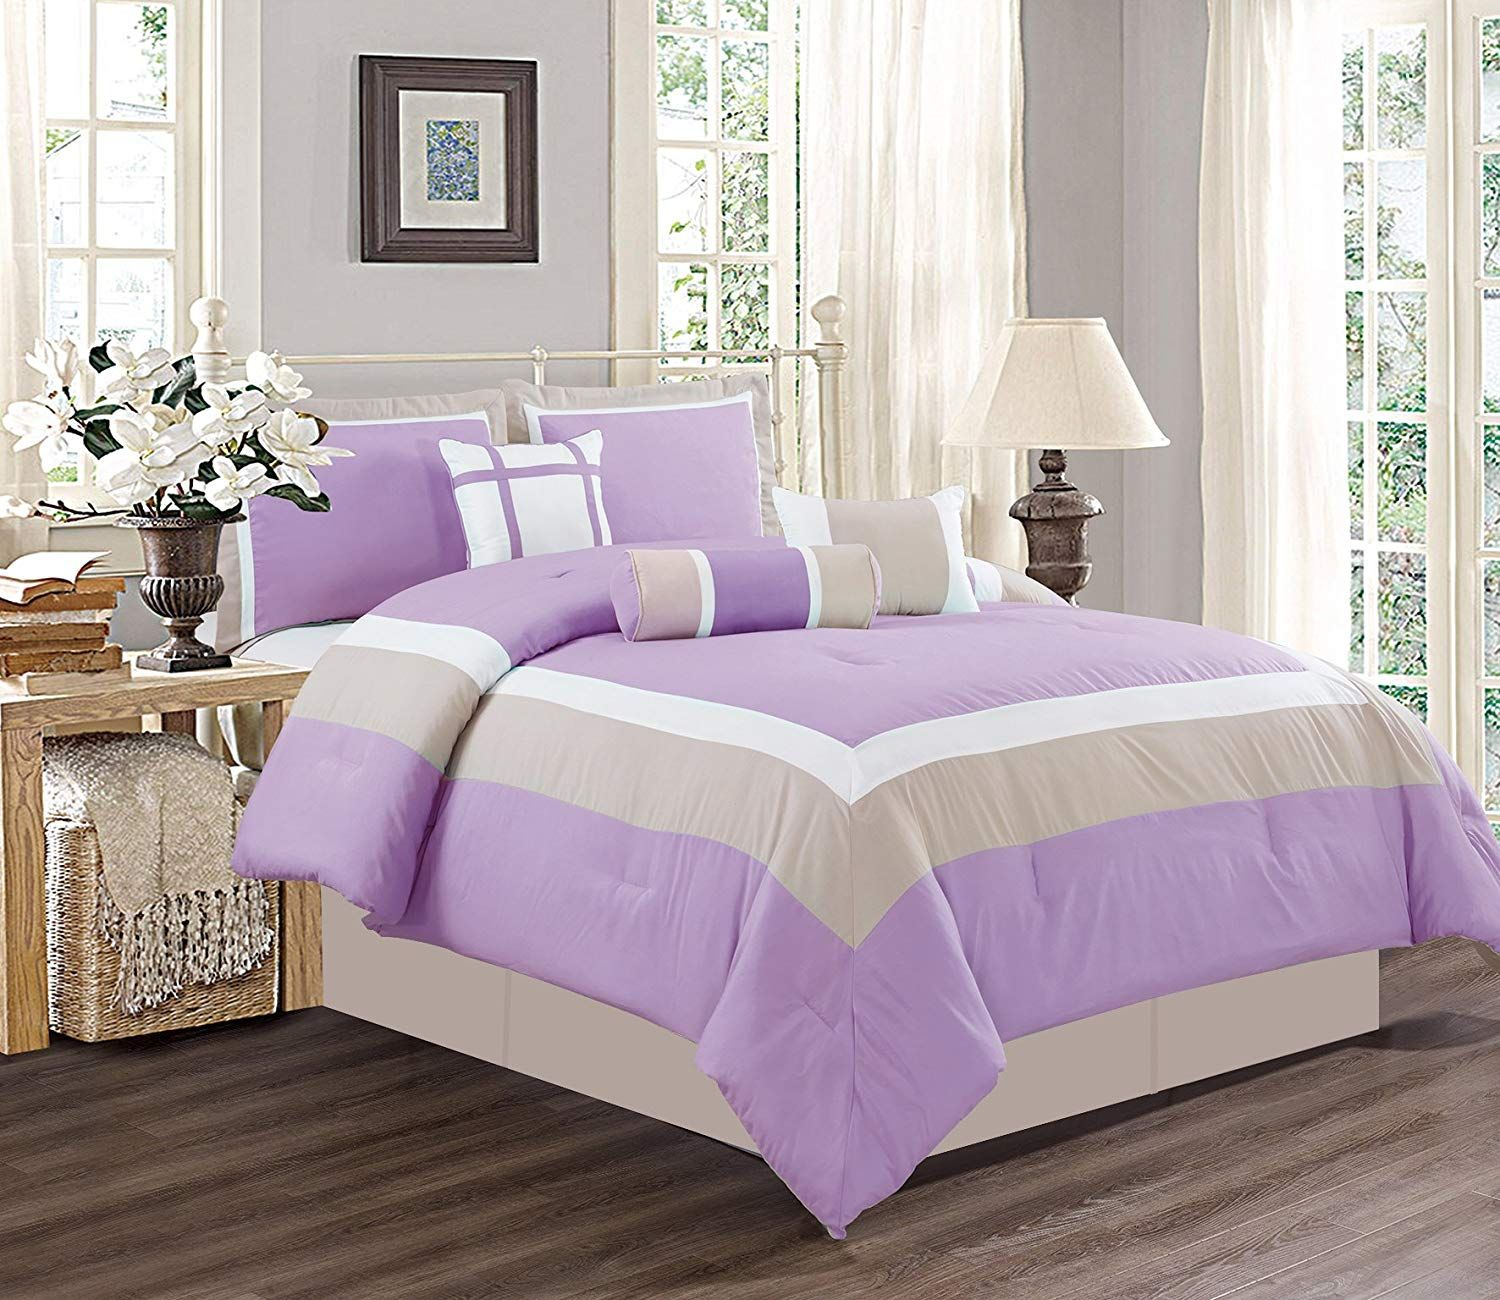 King Size Bedding Sale.7 Piece King Size Lilac Purple White Grey Color Bedding